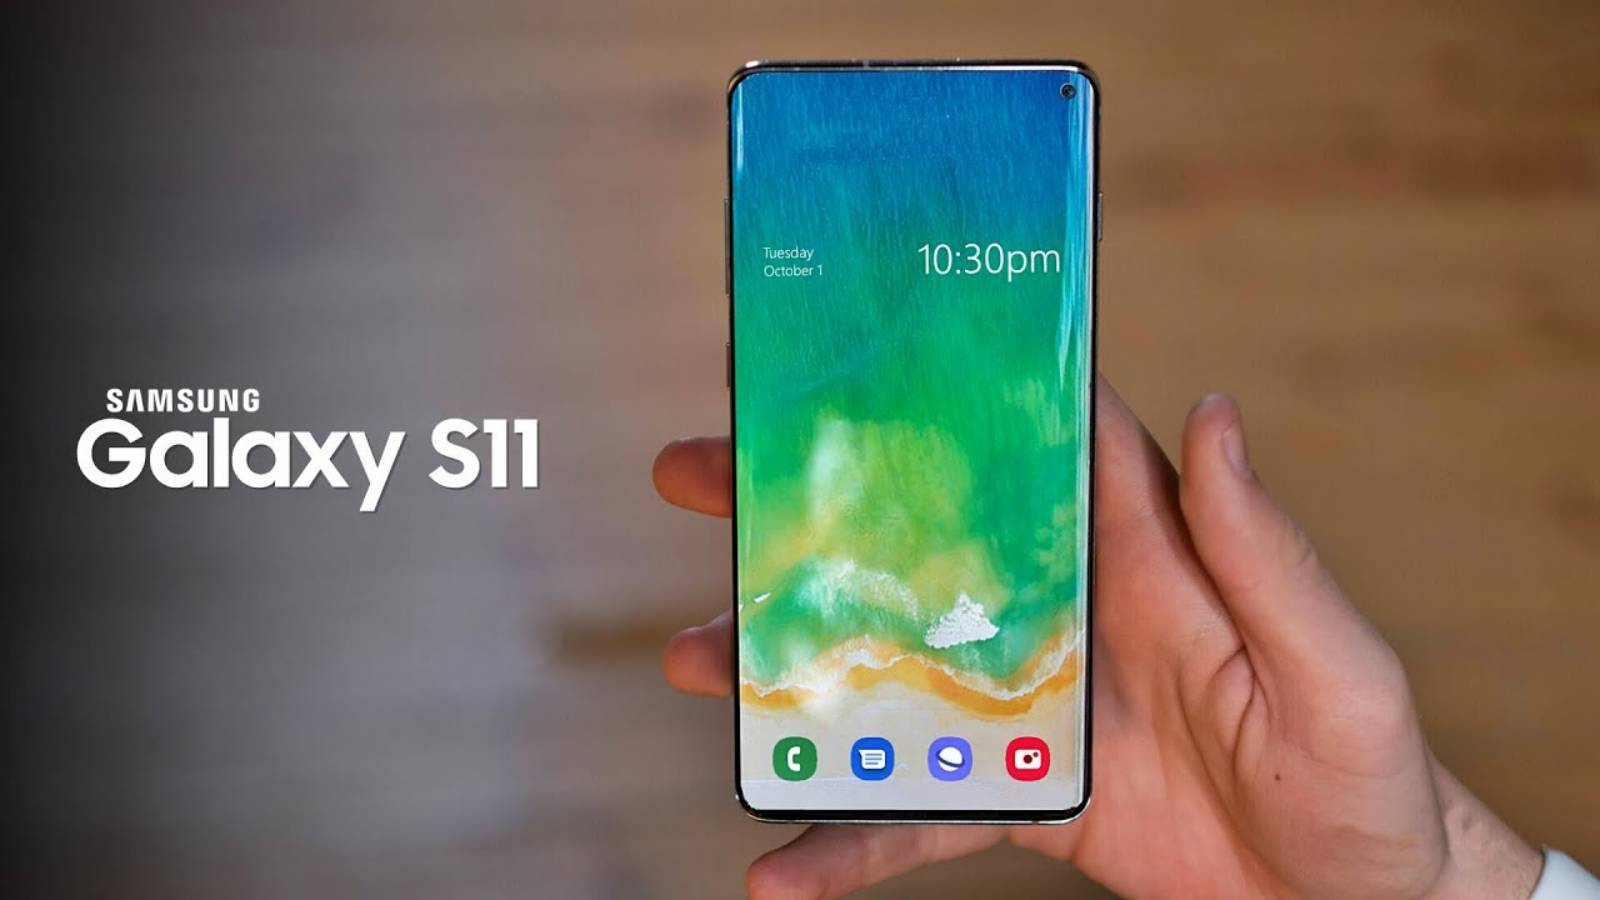 Samsung GALAXY S11 Qualcomm Snapdragon 865